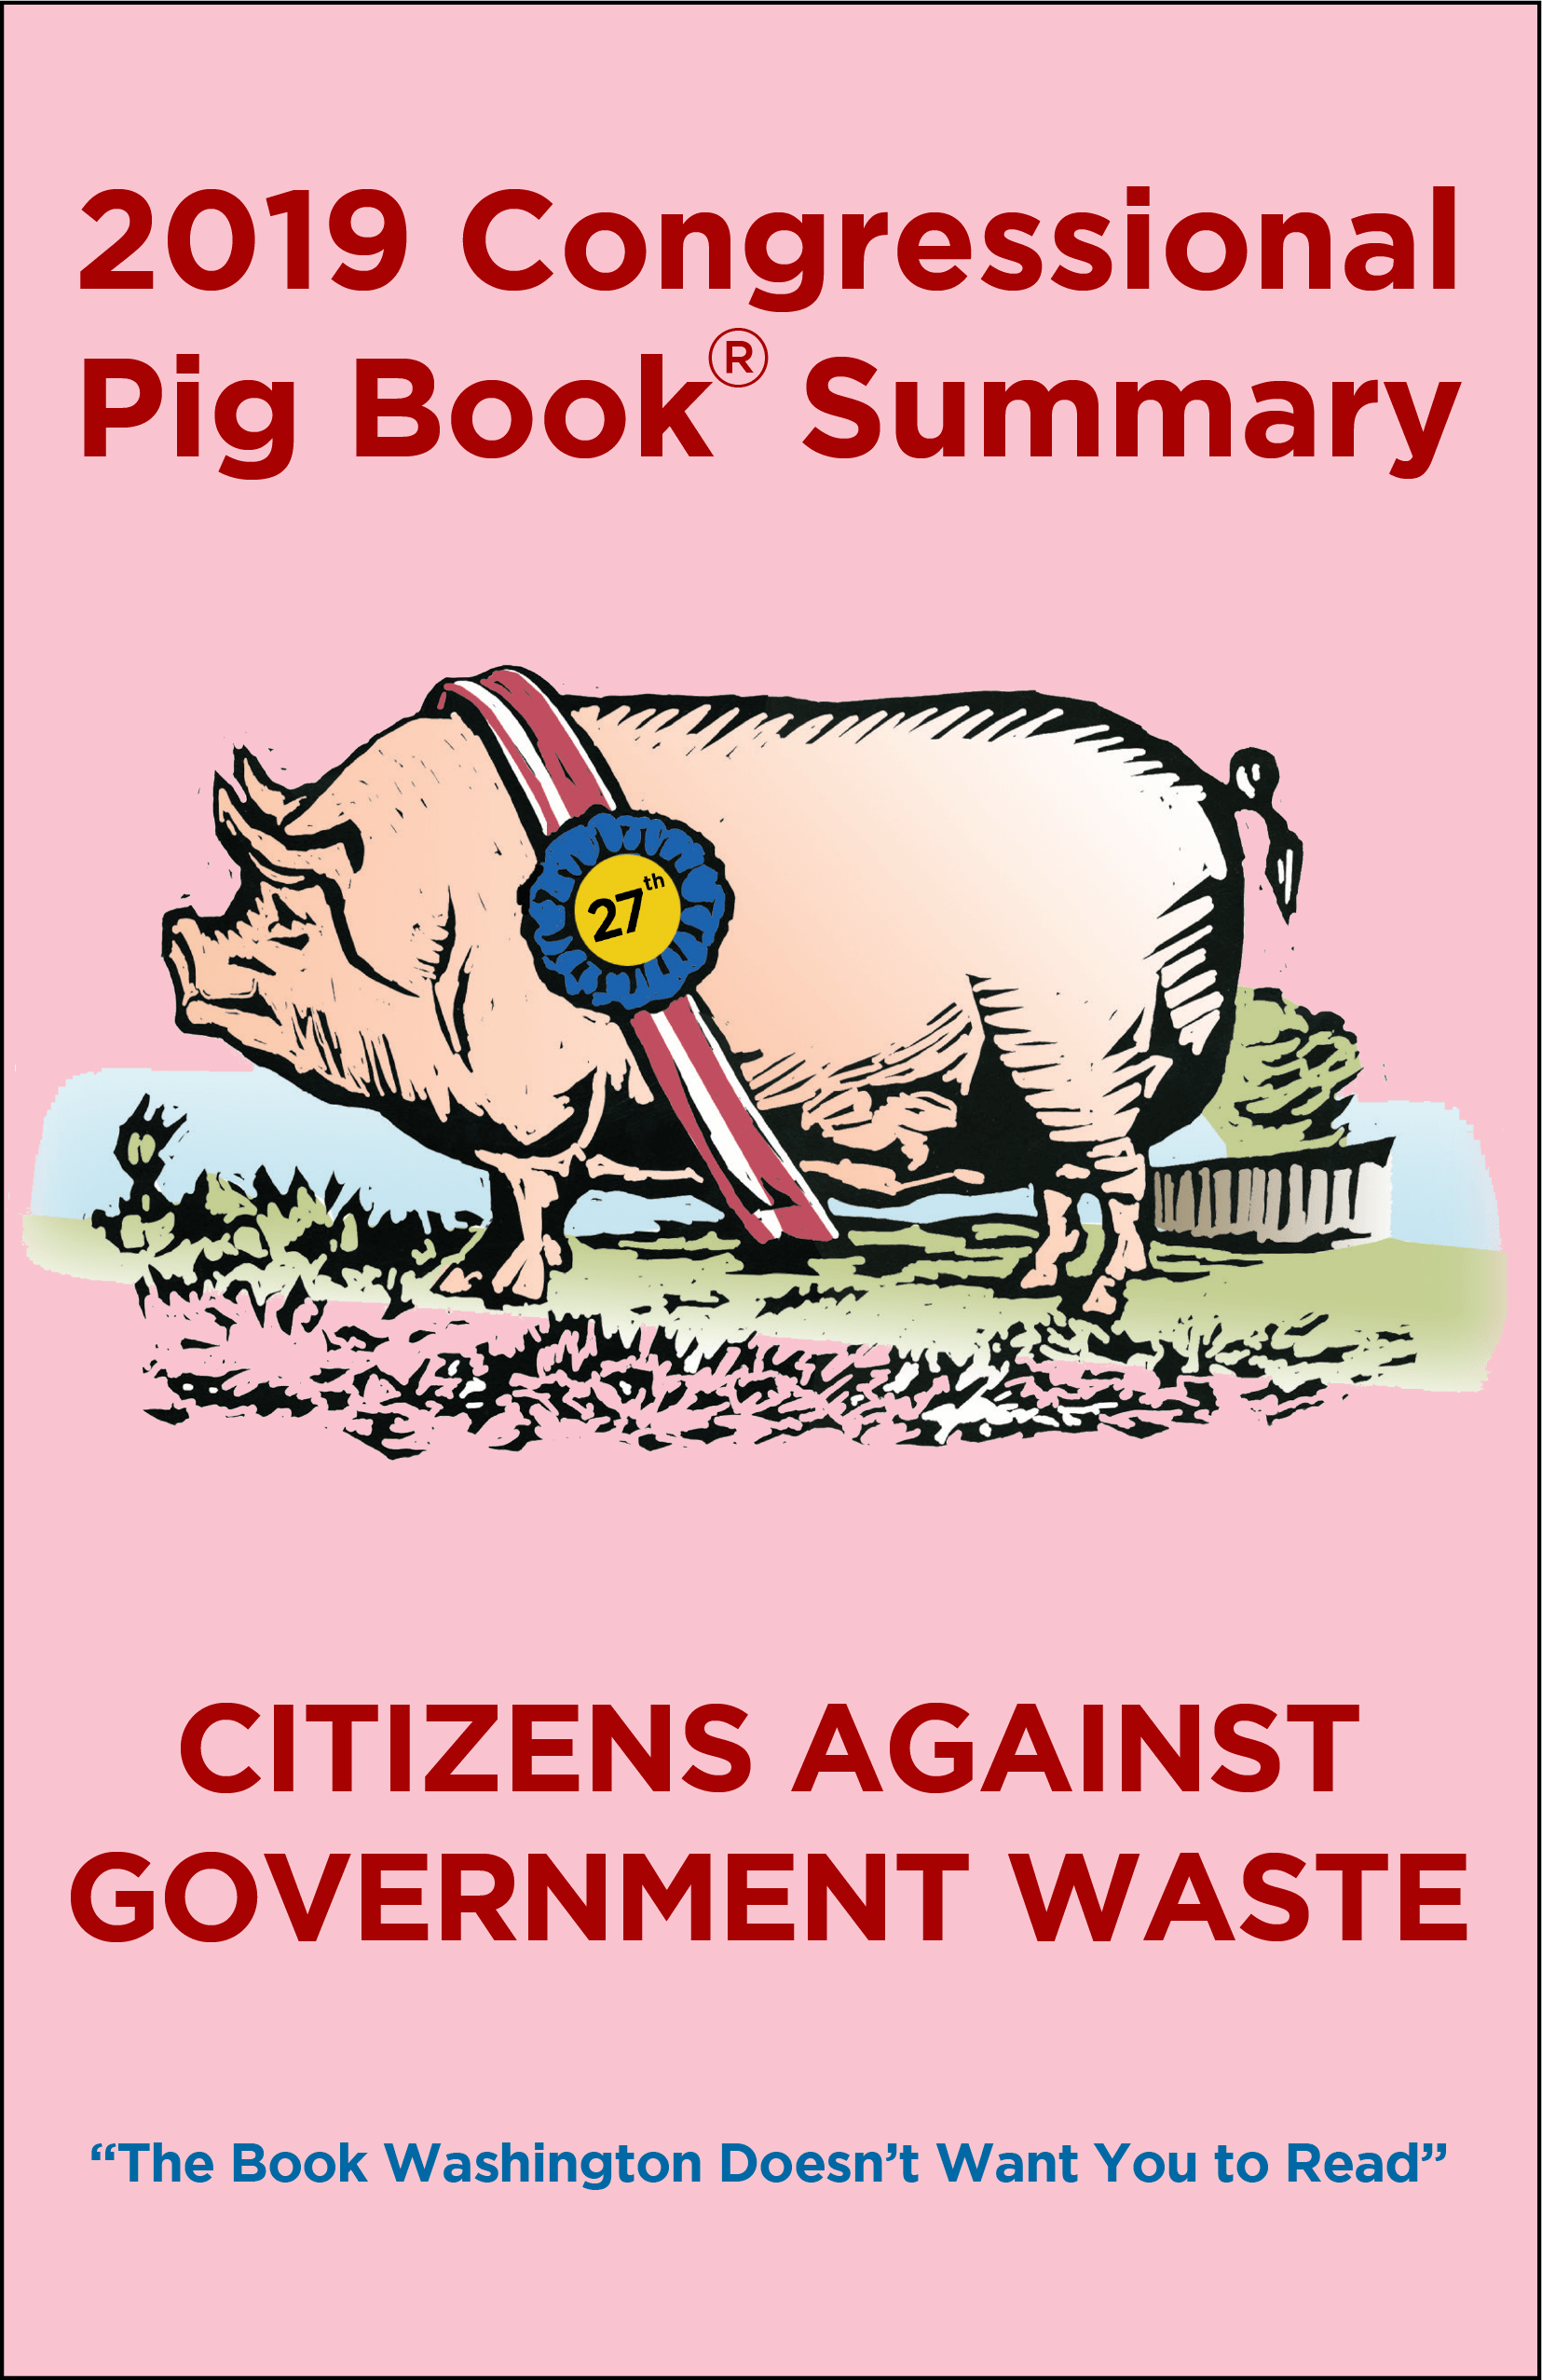 2019 Congressional Pig Book | Citizens Against Government Waste